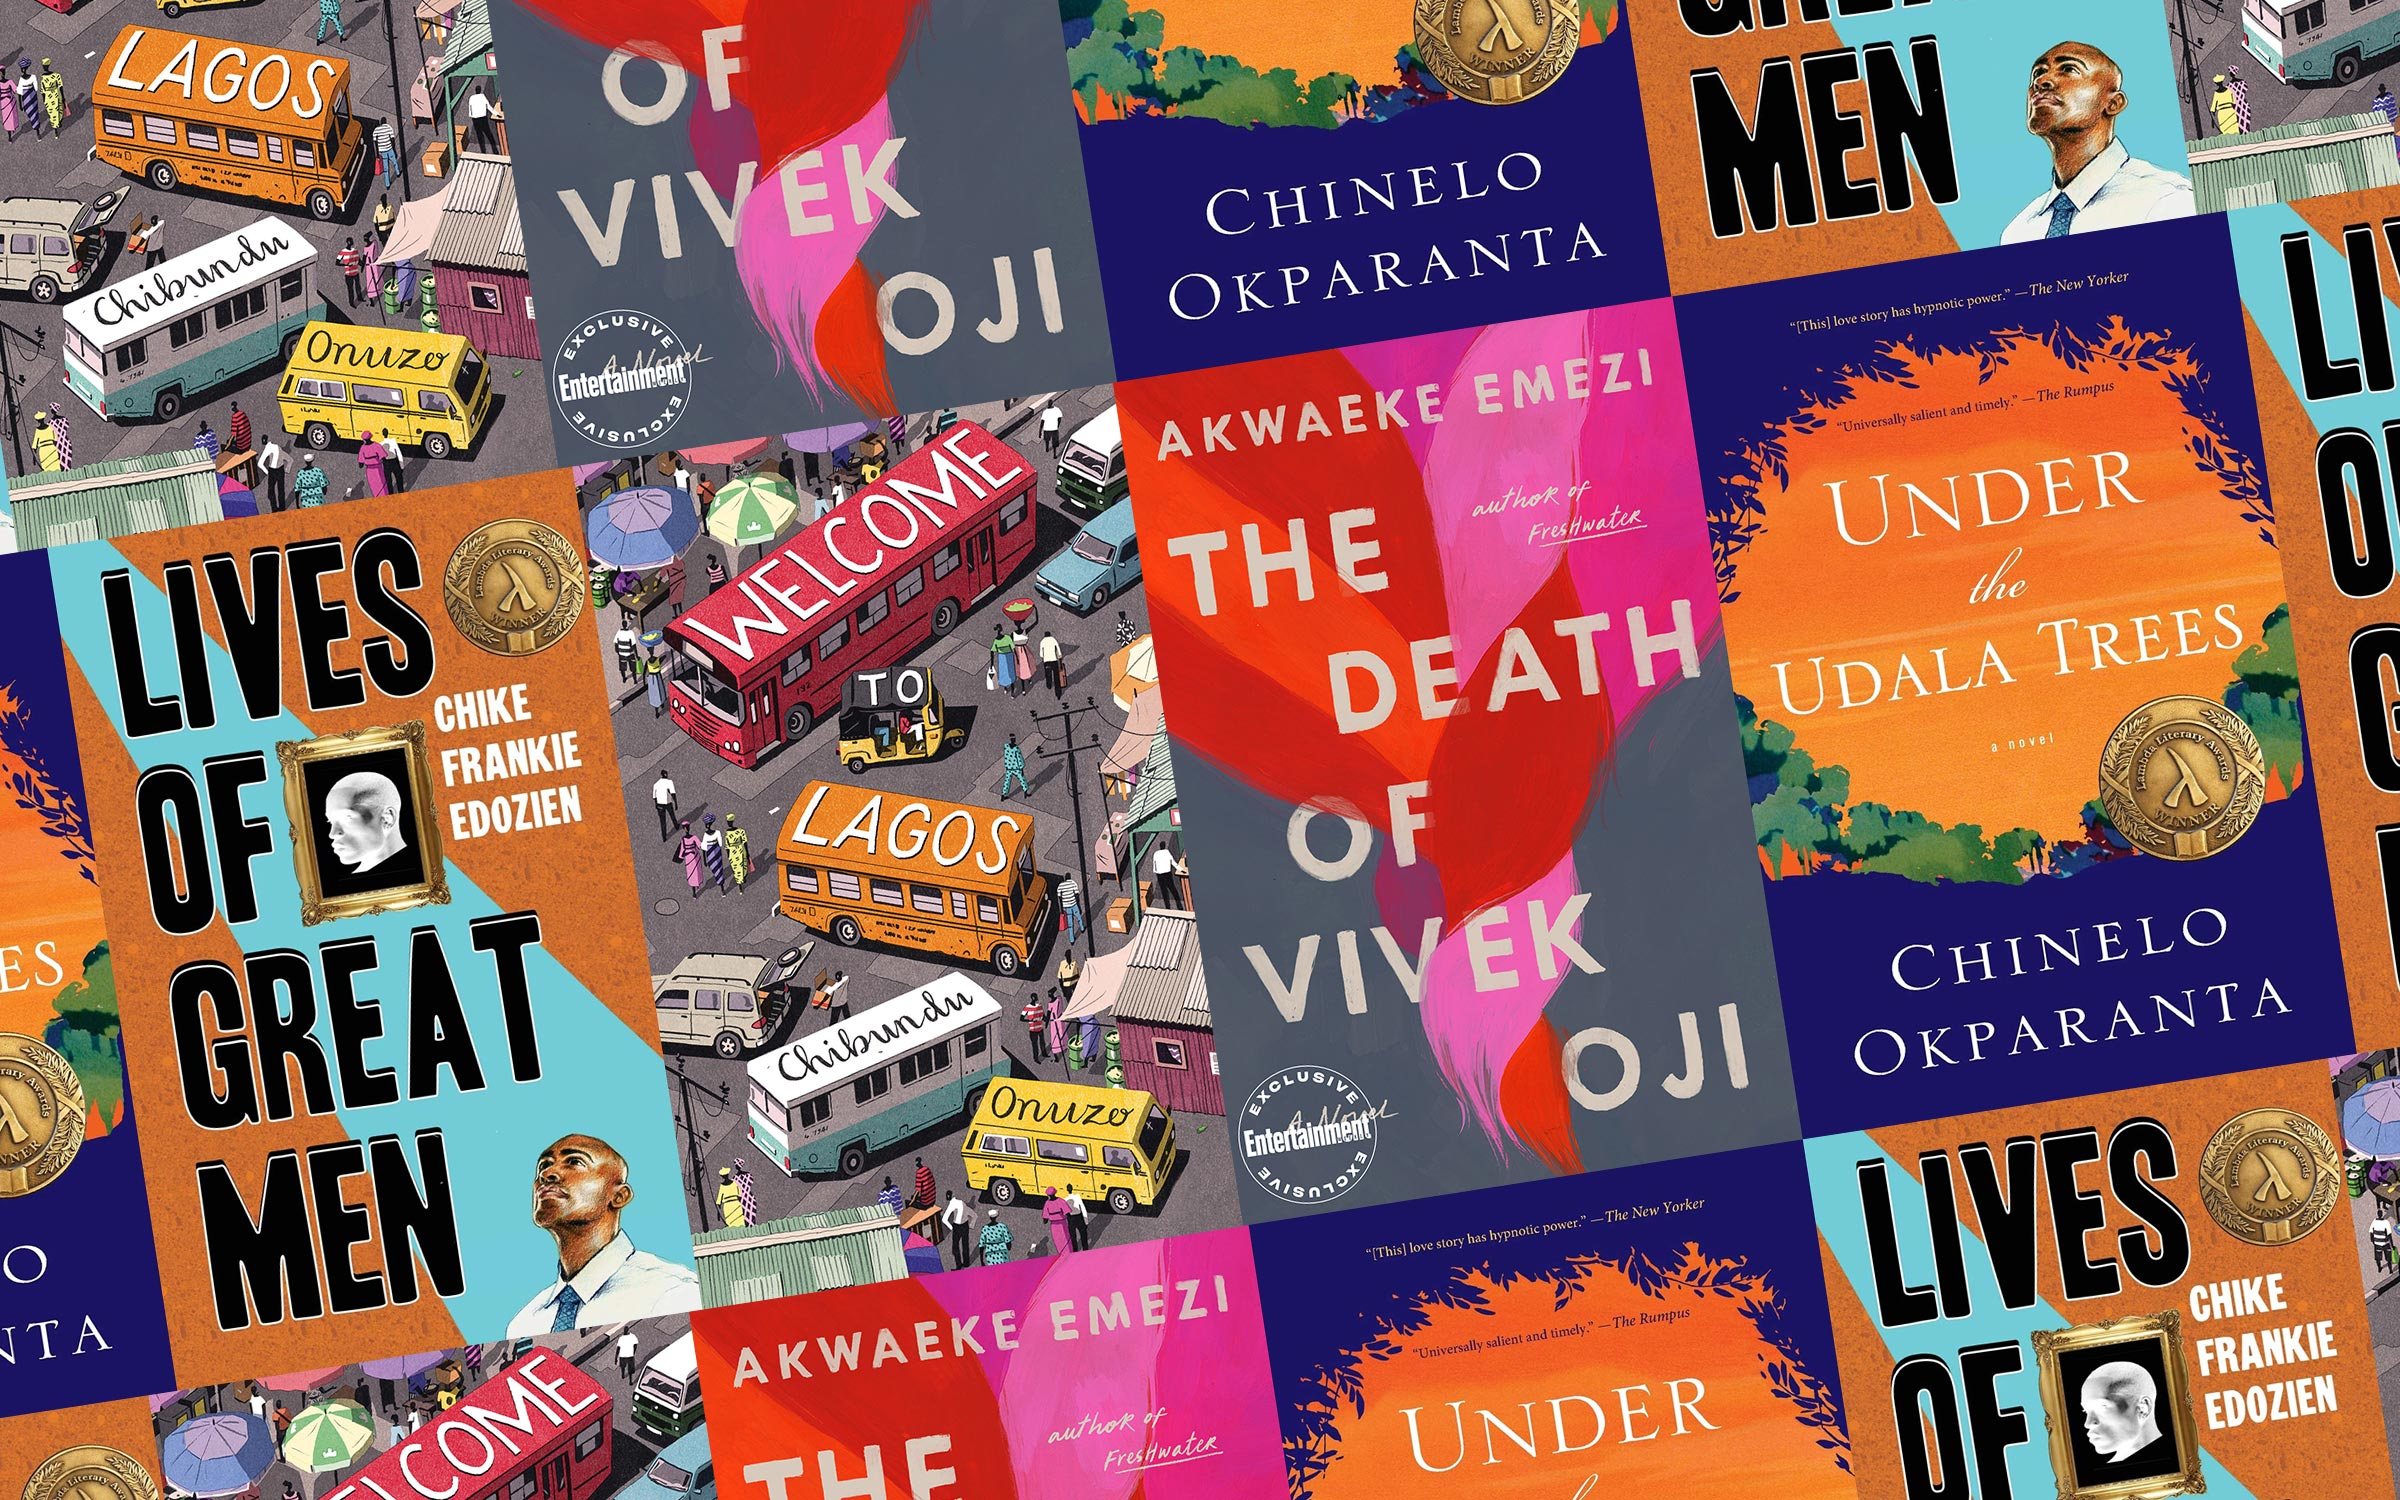 a collage of four book covers: Lives of Great Men, Welcome to Lagos, The Death of Vivek Oji, and Under the Udala Trees